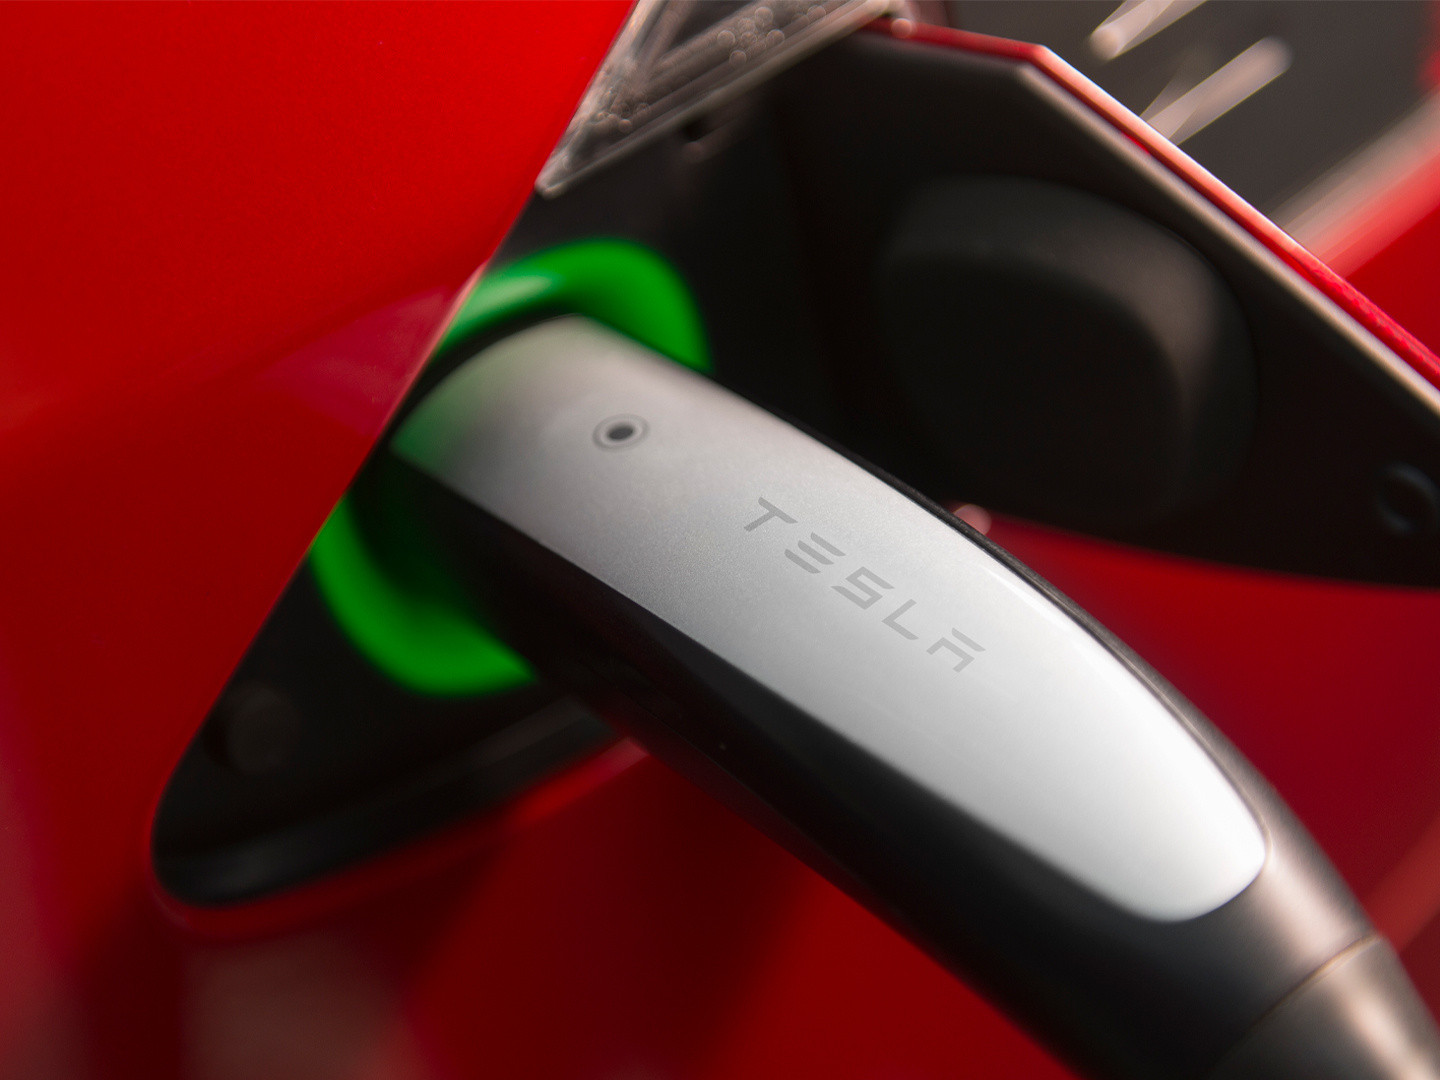 Supercharger plugged into a Tesla charge port